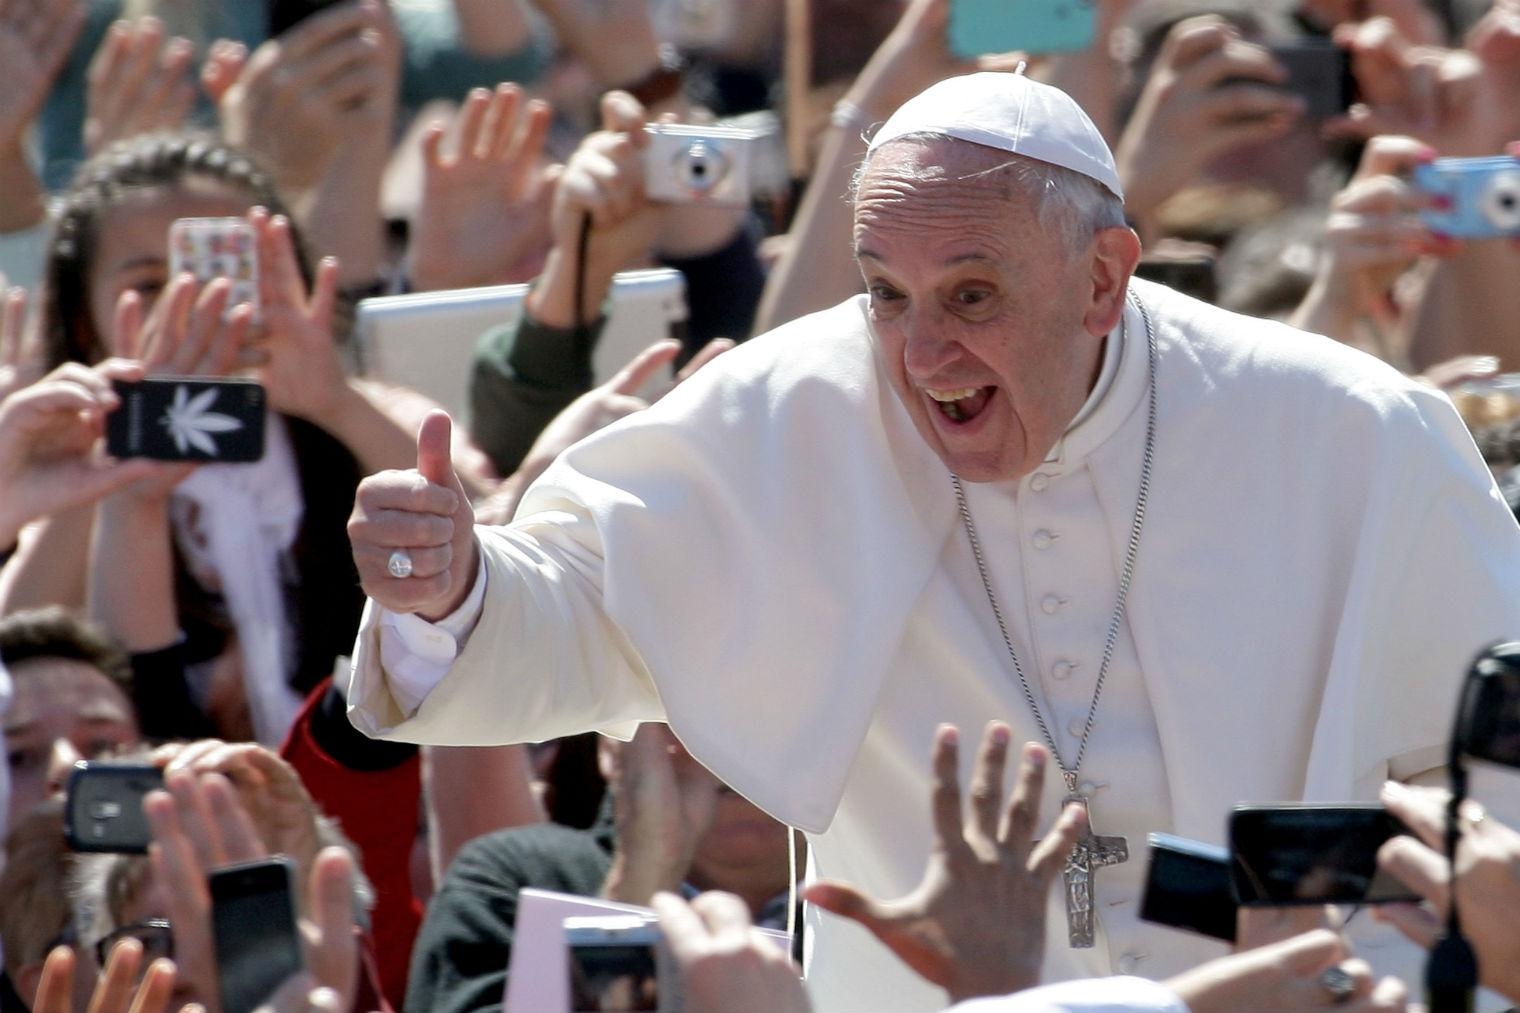 Pope Francis is dropping a prog rock album  Yes, really